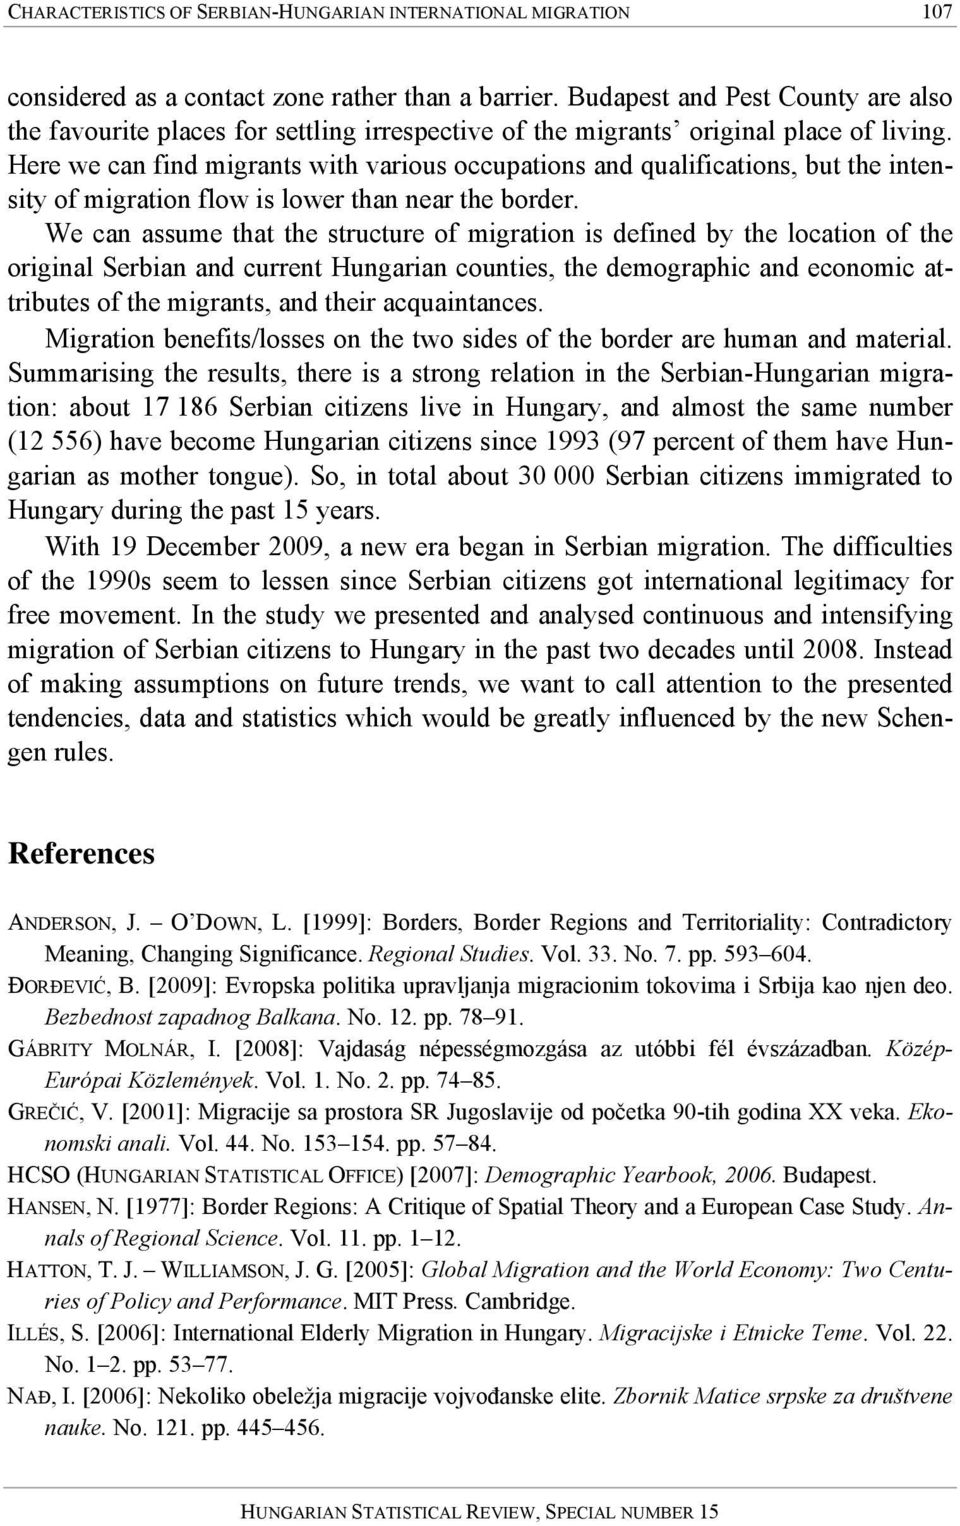 Here we can find migrants with various occupations and qualifications, but the intensity of migration flow is lower than near the border.